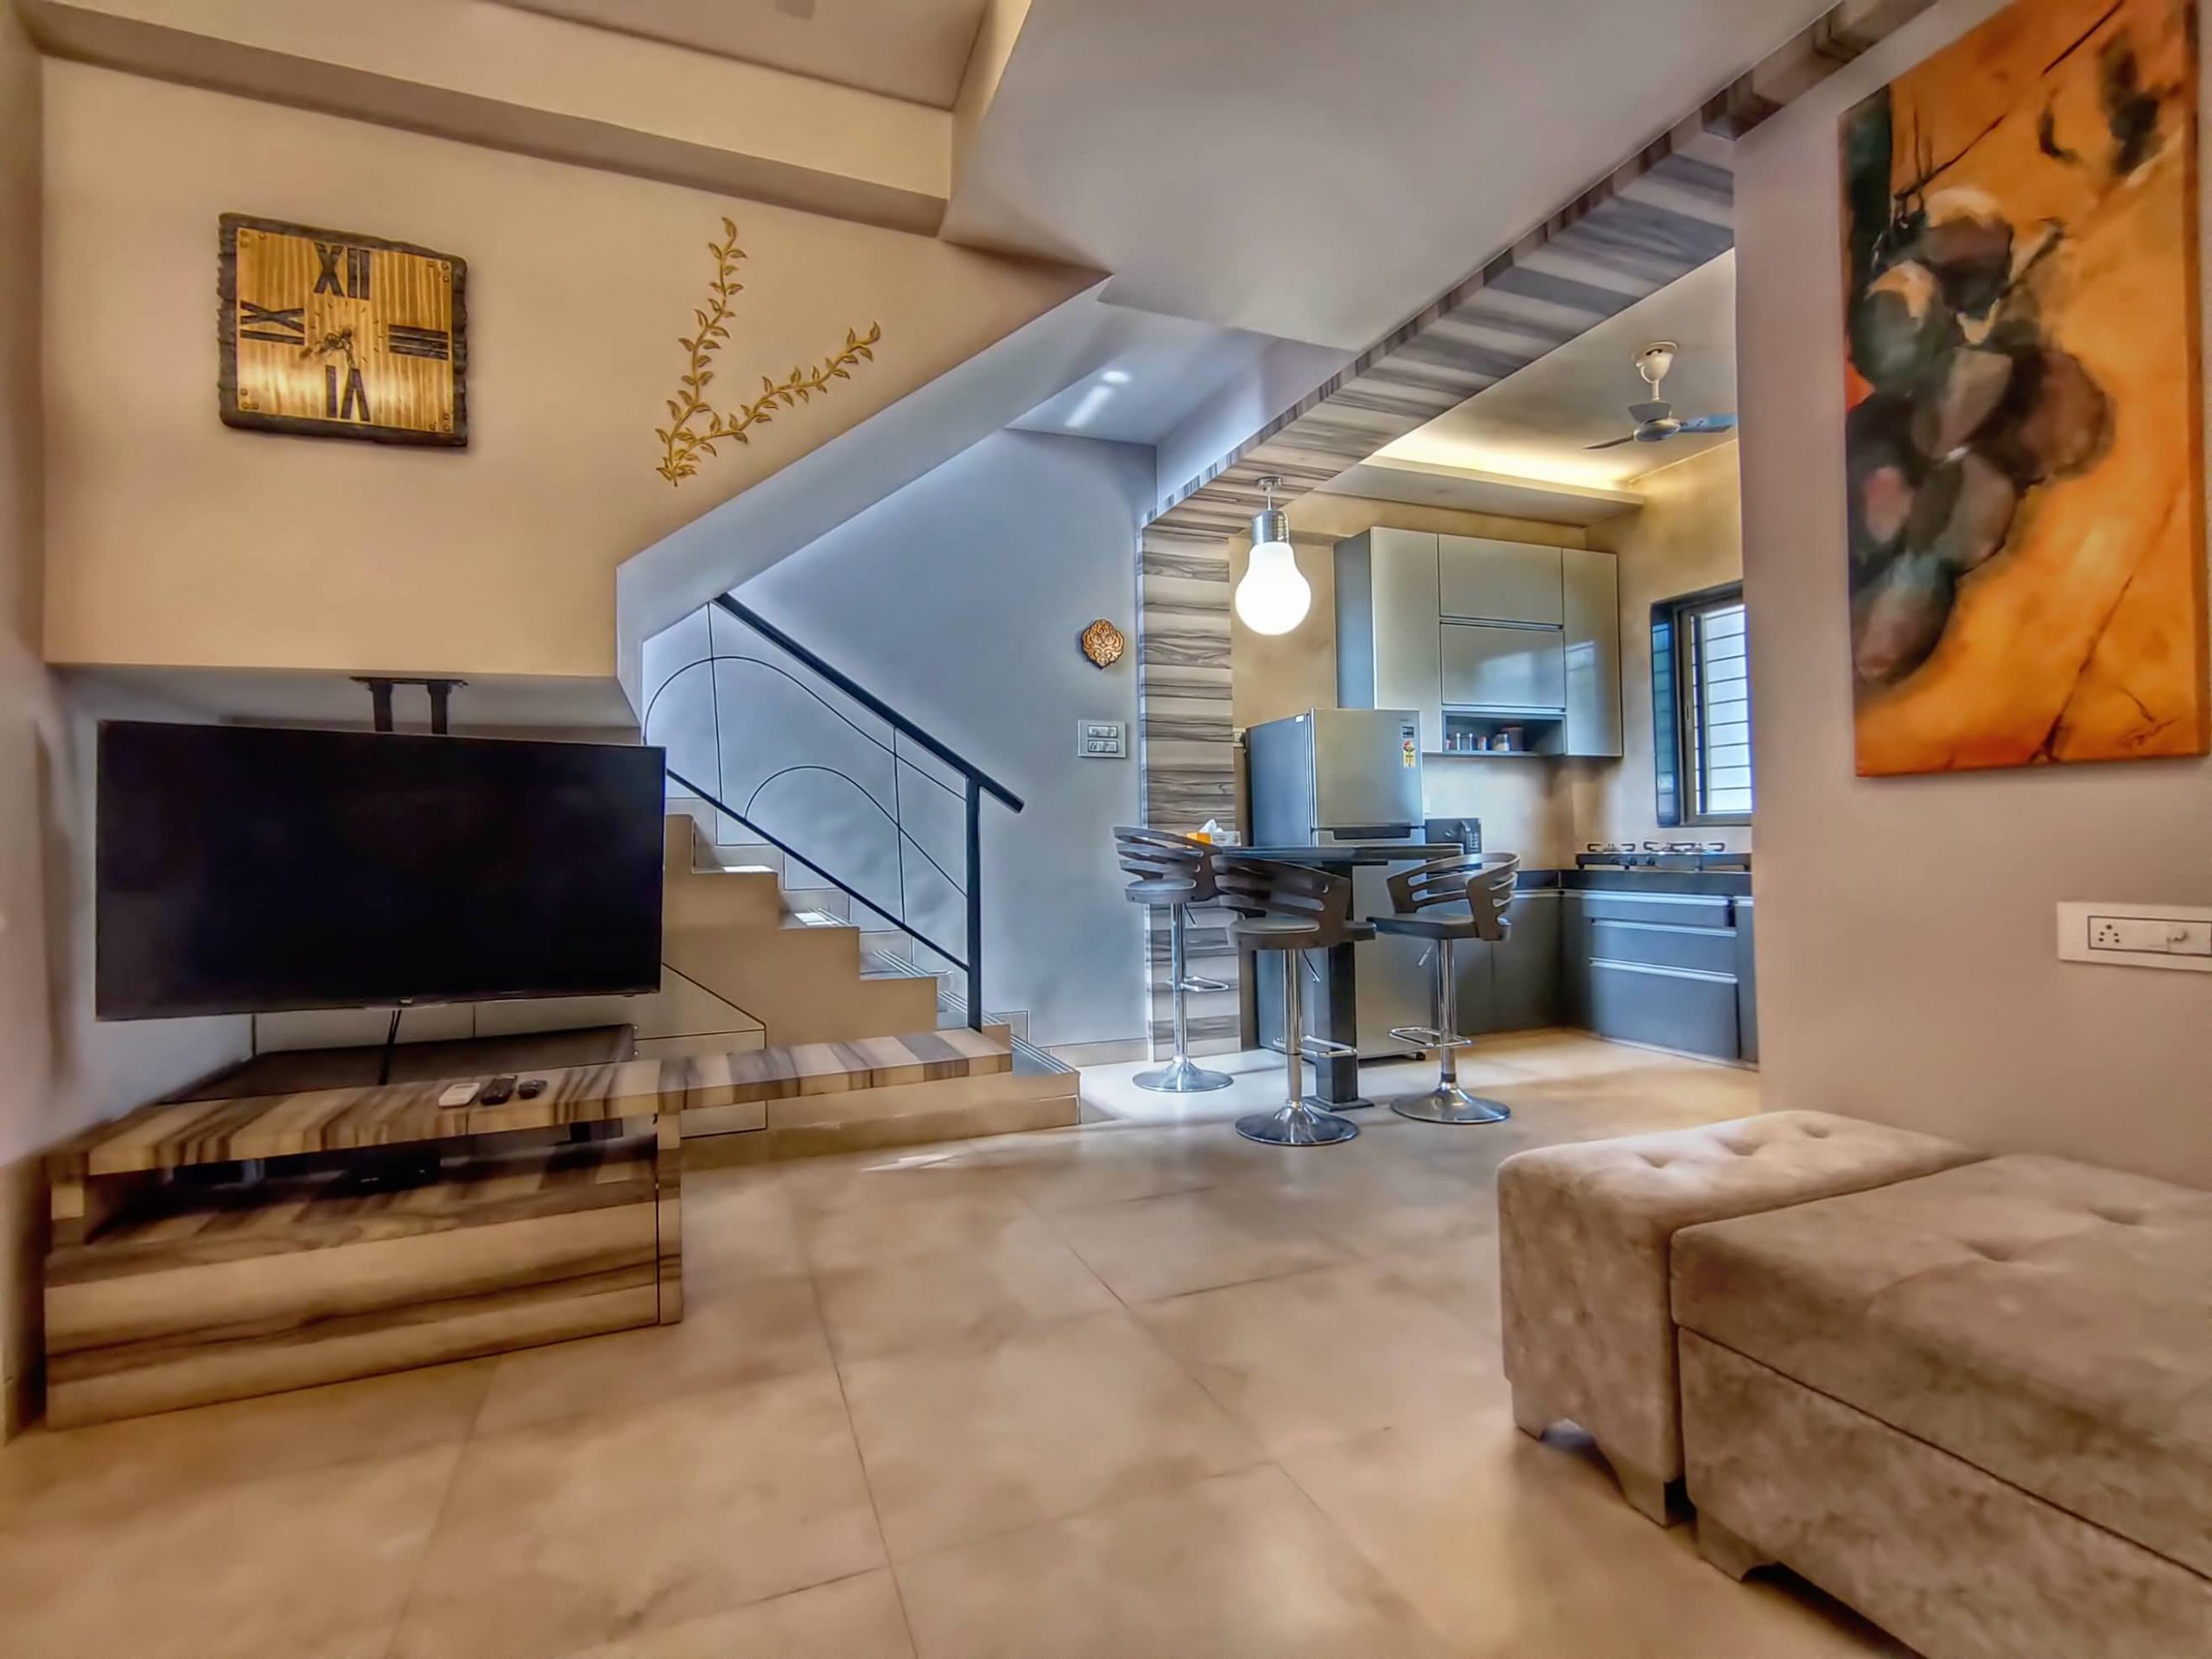 HAVE Villa 17 - Living view with LED TV / Kitchen